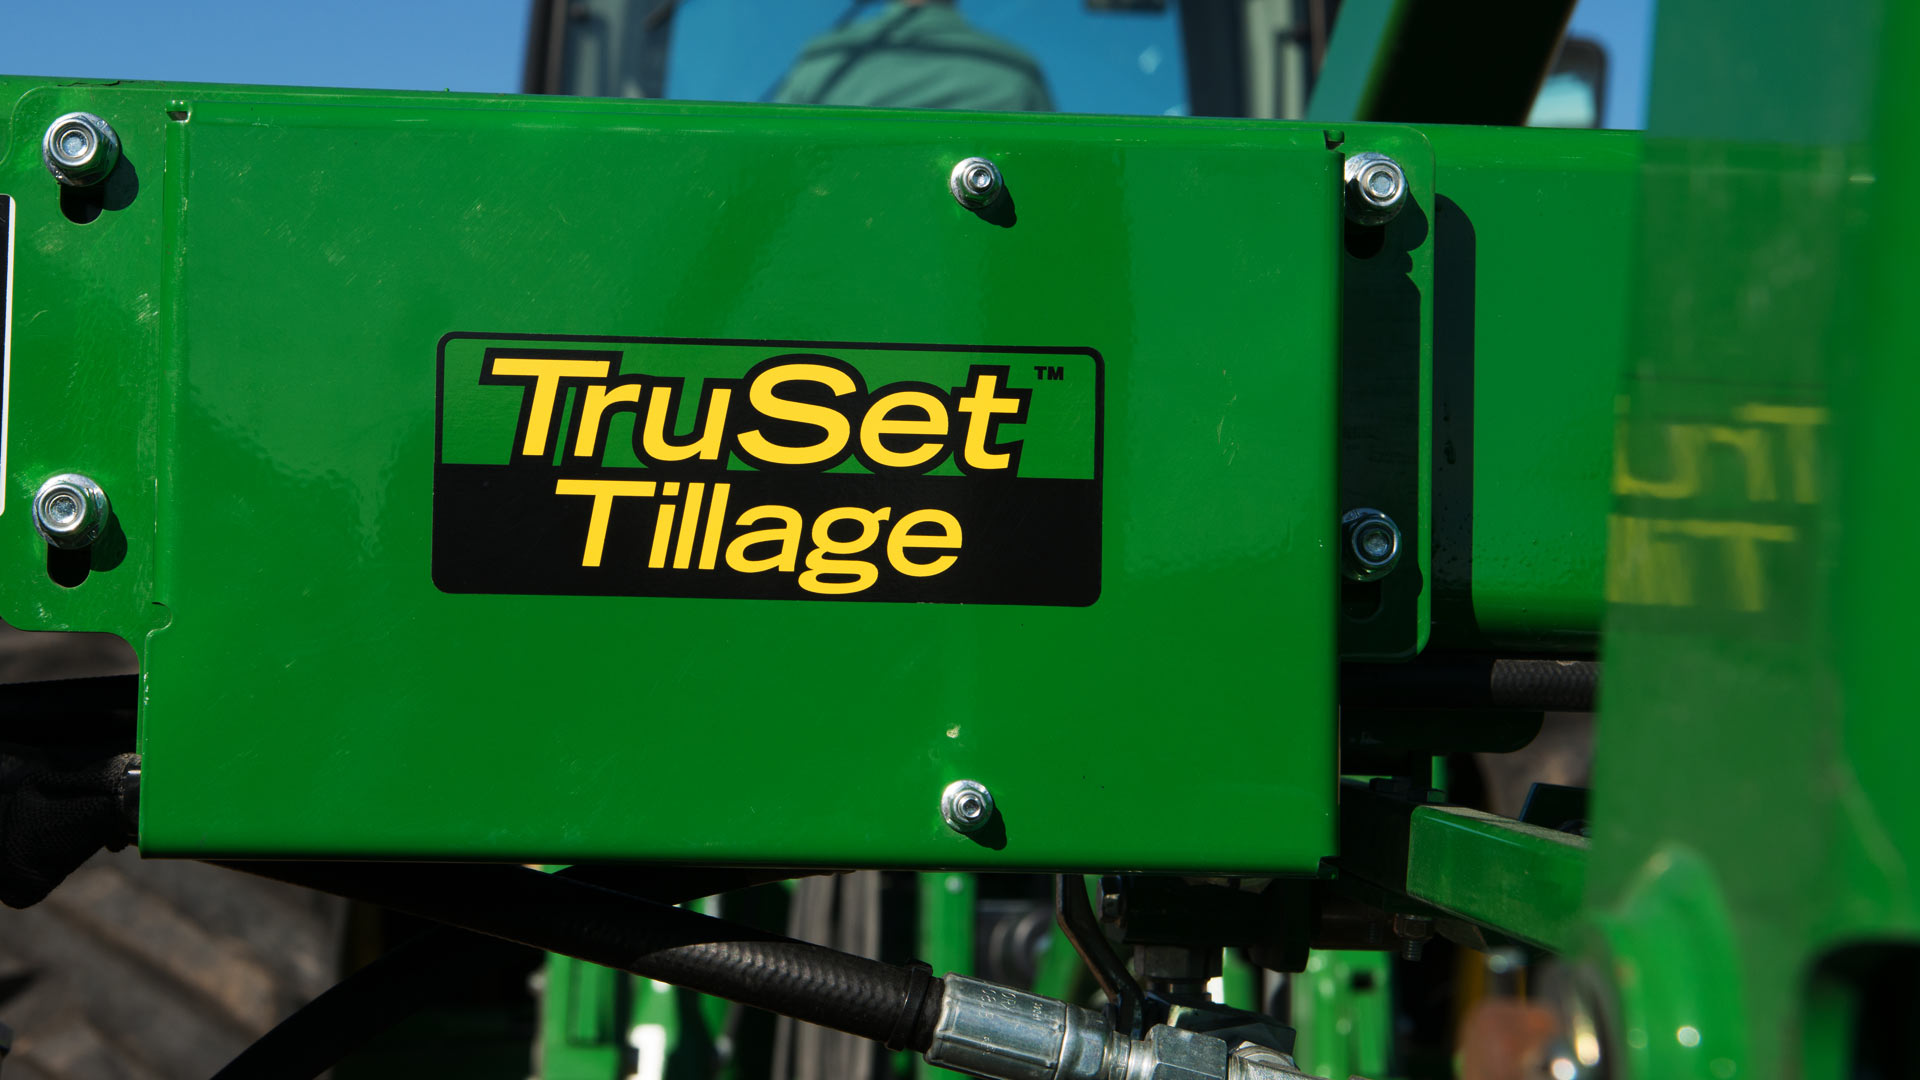 truset on the side of equipment